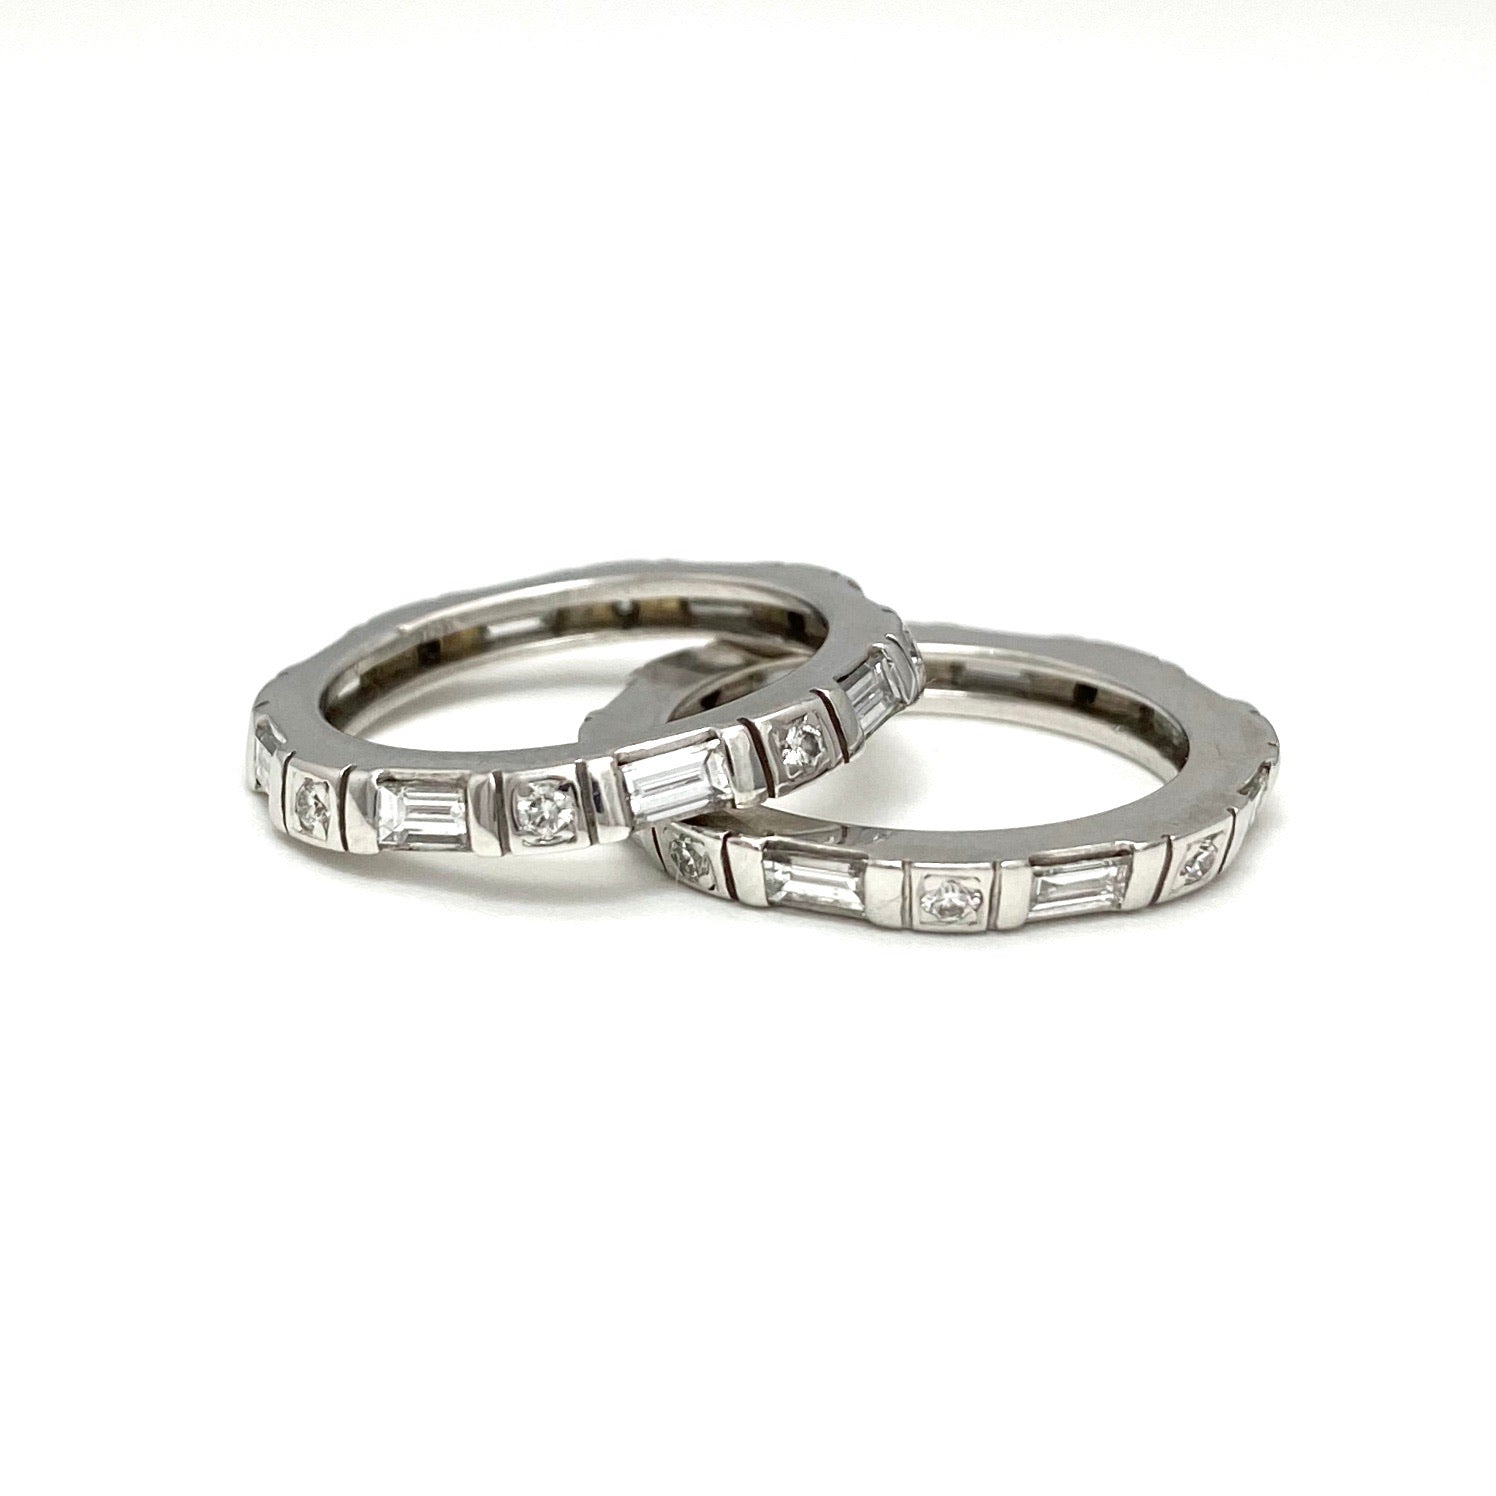 18K White Gold Set of Diamond Eternity Rings or Wedding Bands